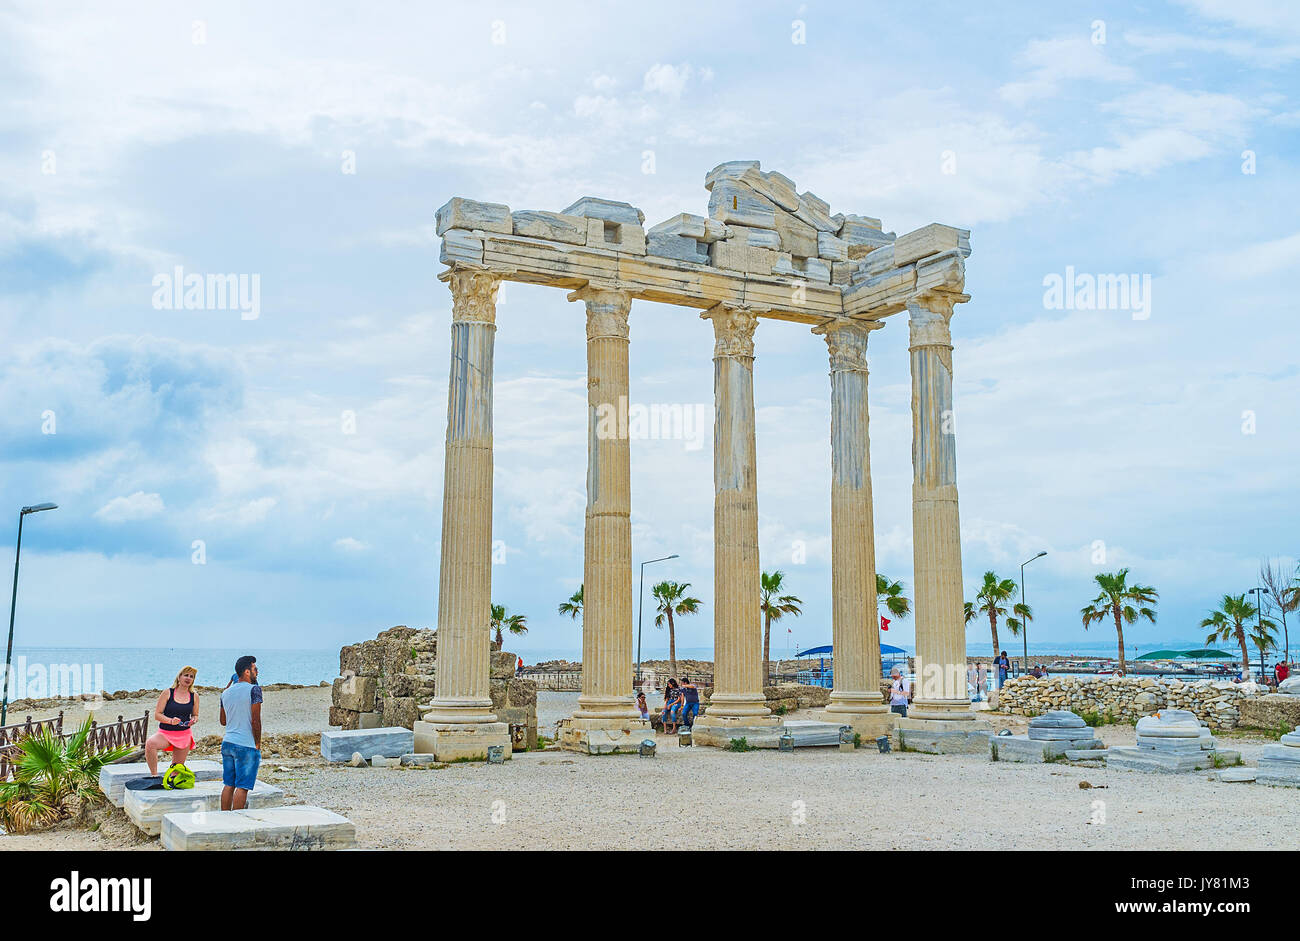 SIDE, TURKEY - MAY 8, 2017: Preserved columns of the ancient Apollo Temple, located on the coast of resort, at the end of Side peninsula, on May 8 in  - Stock Image